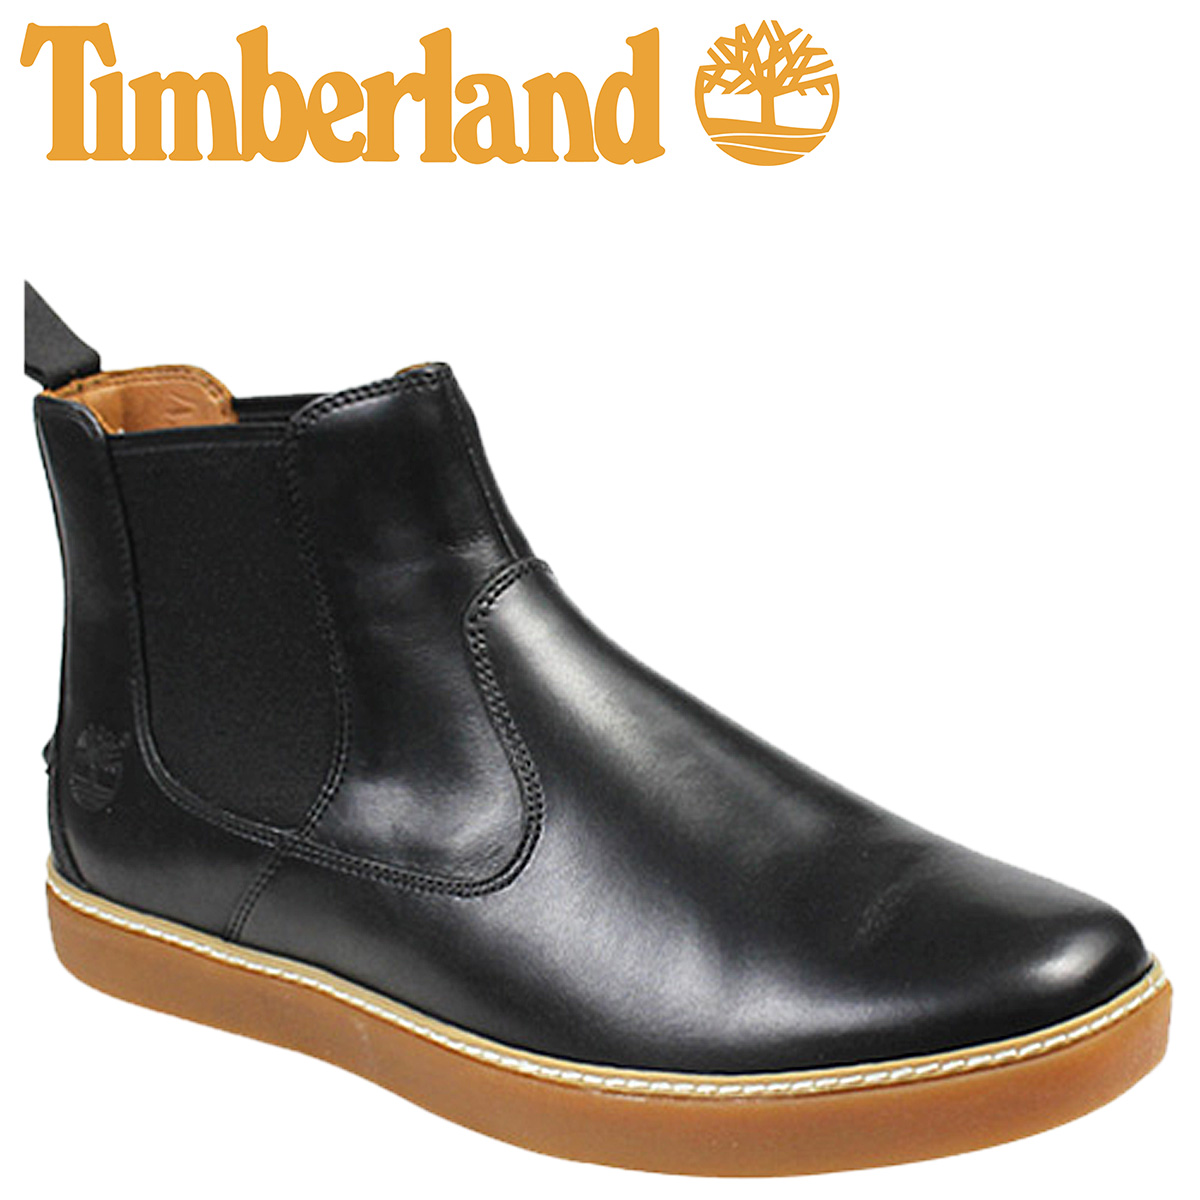 a8c9667df256 ALLSPORTS  Timberland Timberland Earthkeepers headstone Chelsea boots  EARTHKEEPERS HUDSTON CHELSEA SHOES leather men s 9652A black  10   9 new in  stock  ...